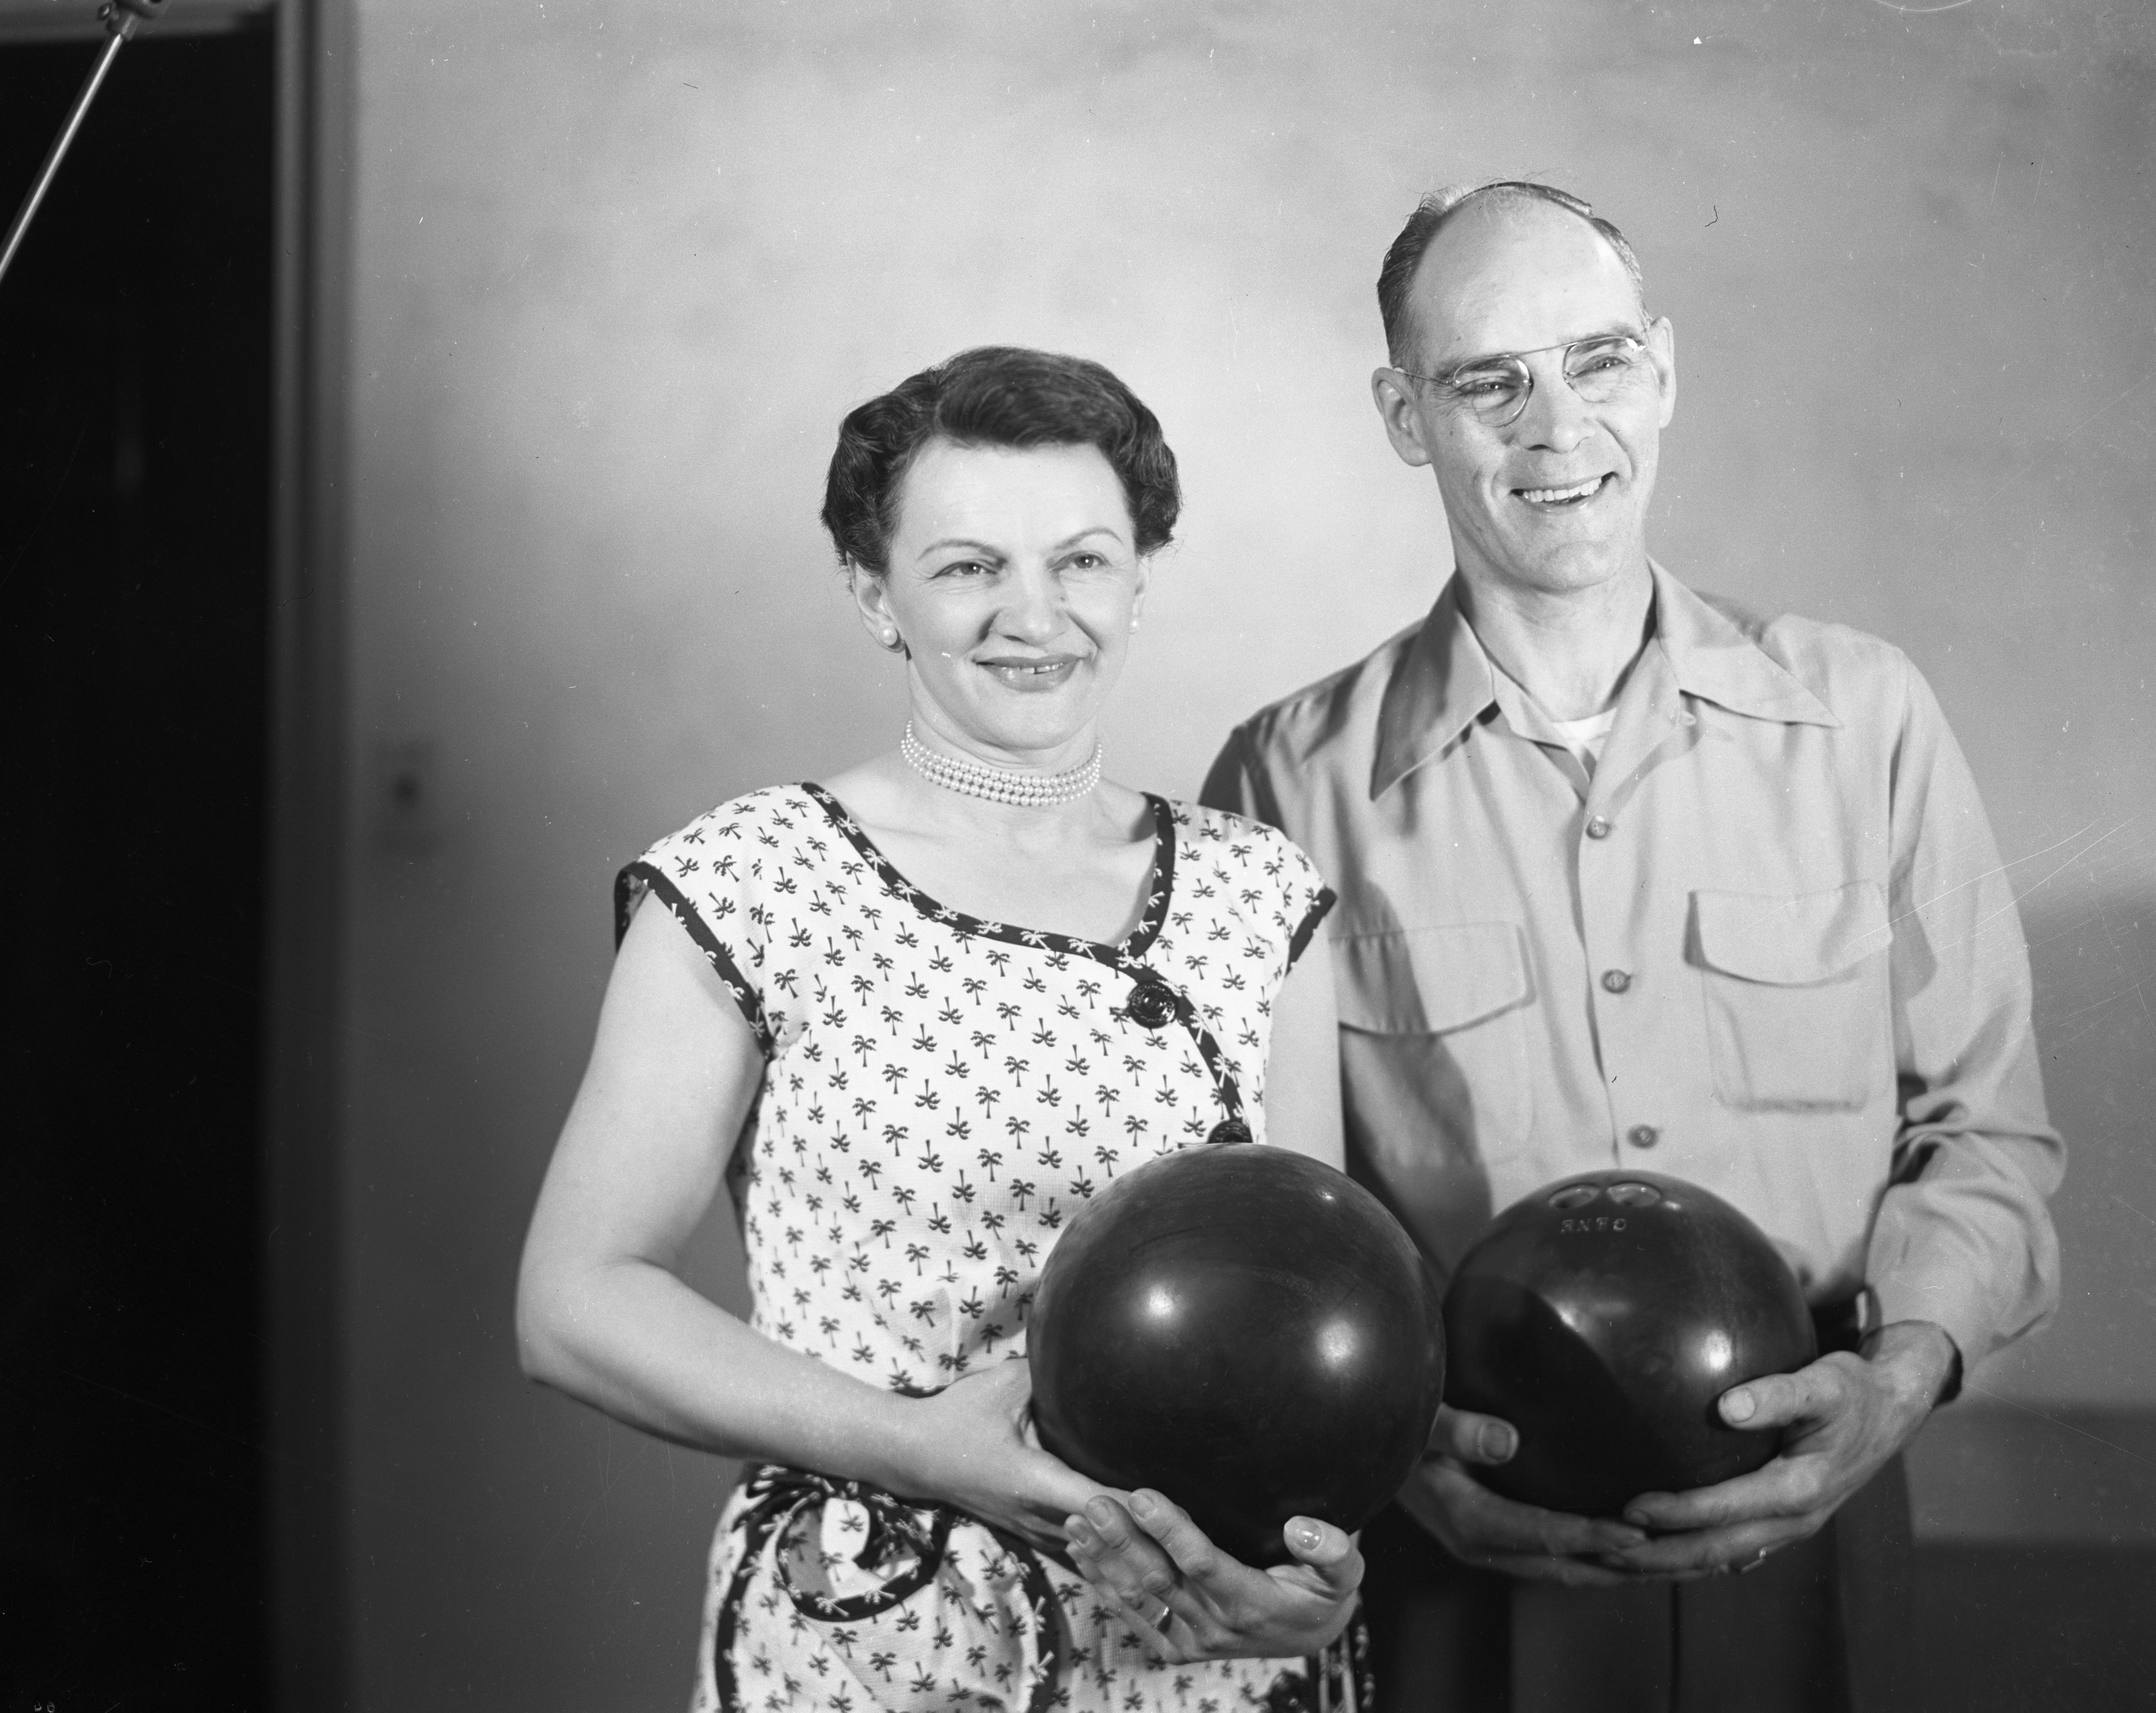 Bowlers Sue Demarest and Gene Livesay, 1952 image